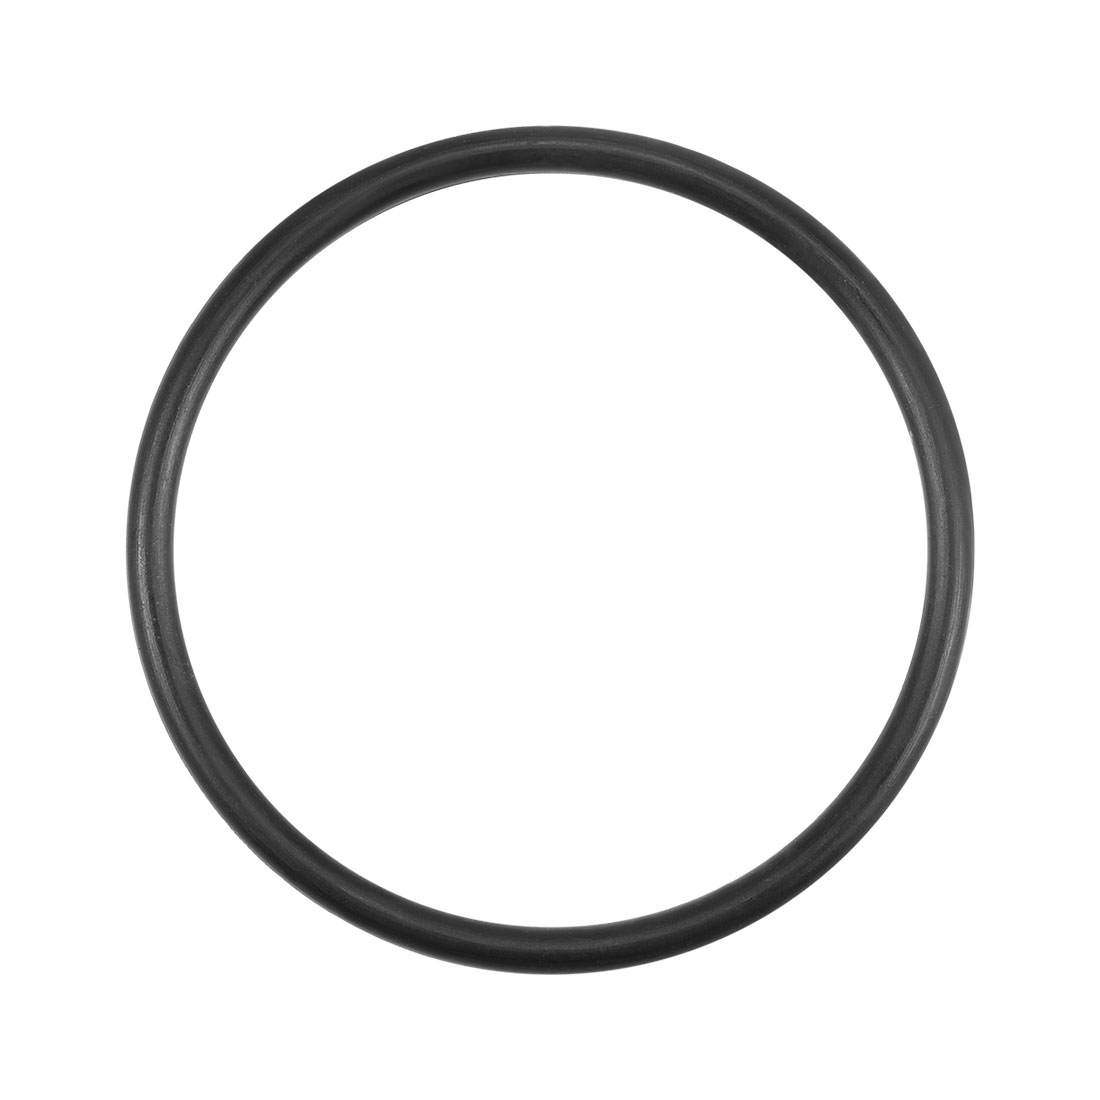 O-Rings Nitrile Rubber 27mm x 30.6mm x 1.8mm Round Seal Gasket 20Pcs